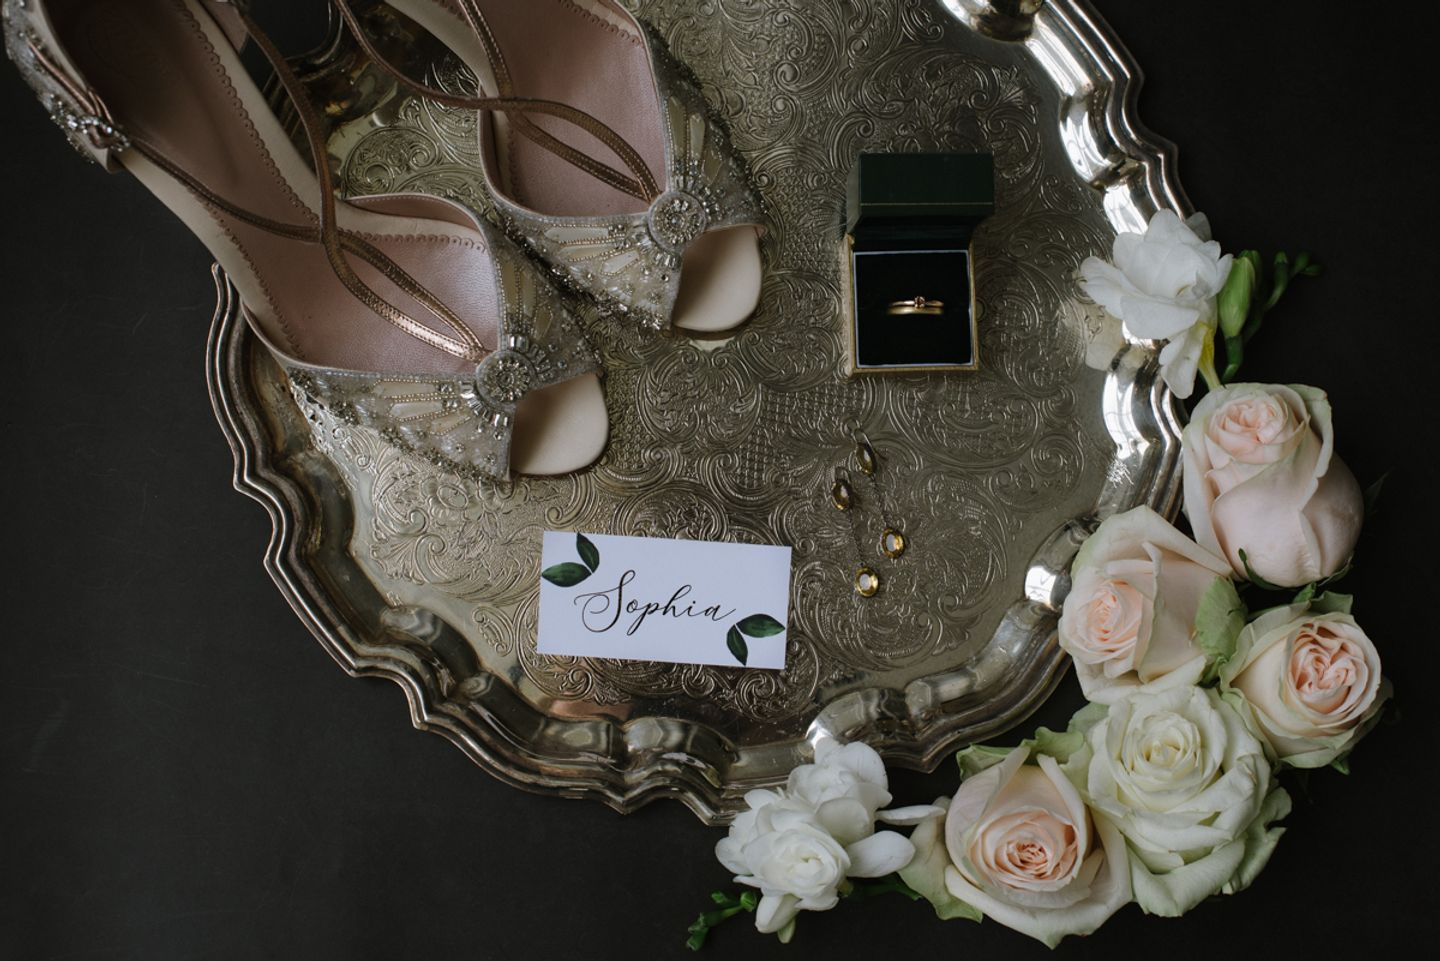 Wedding flat lay styling, Art Deco heels with bridal jewellery on a silver tray with roses